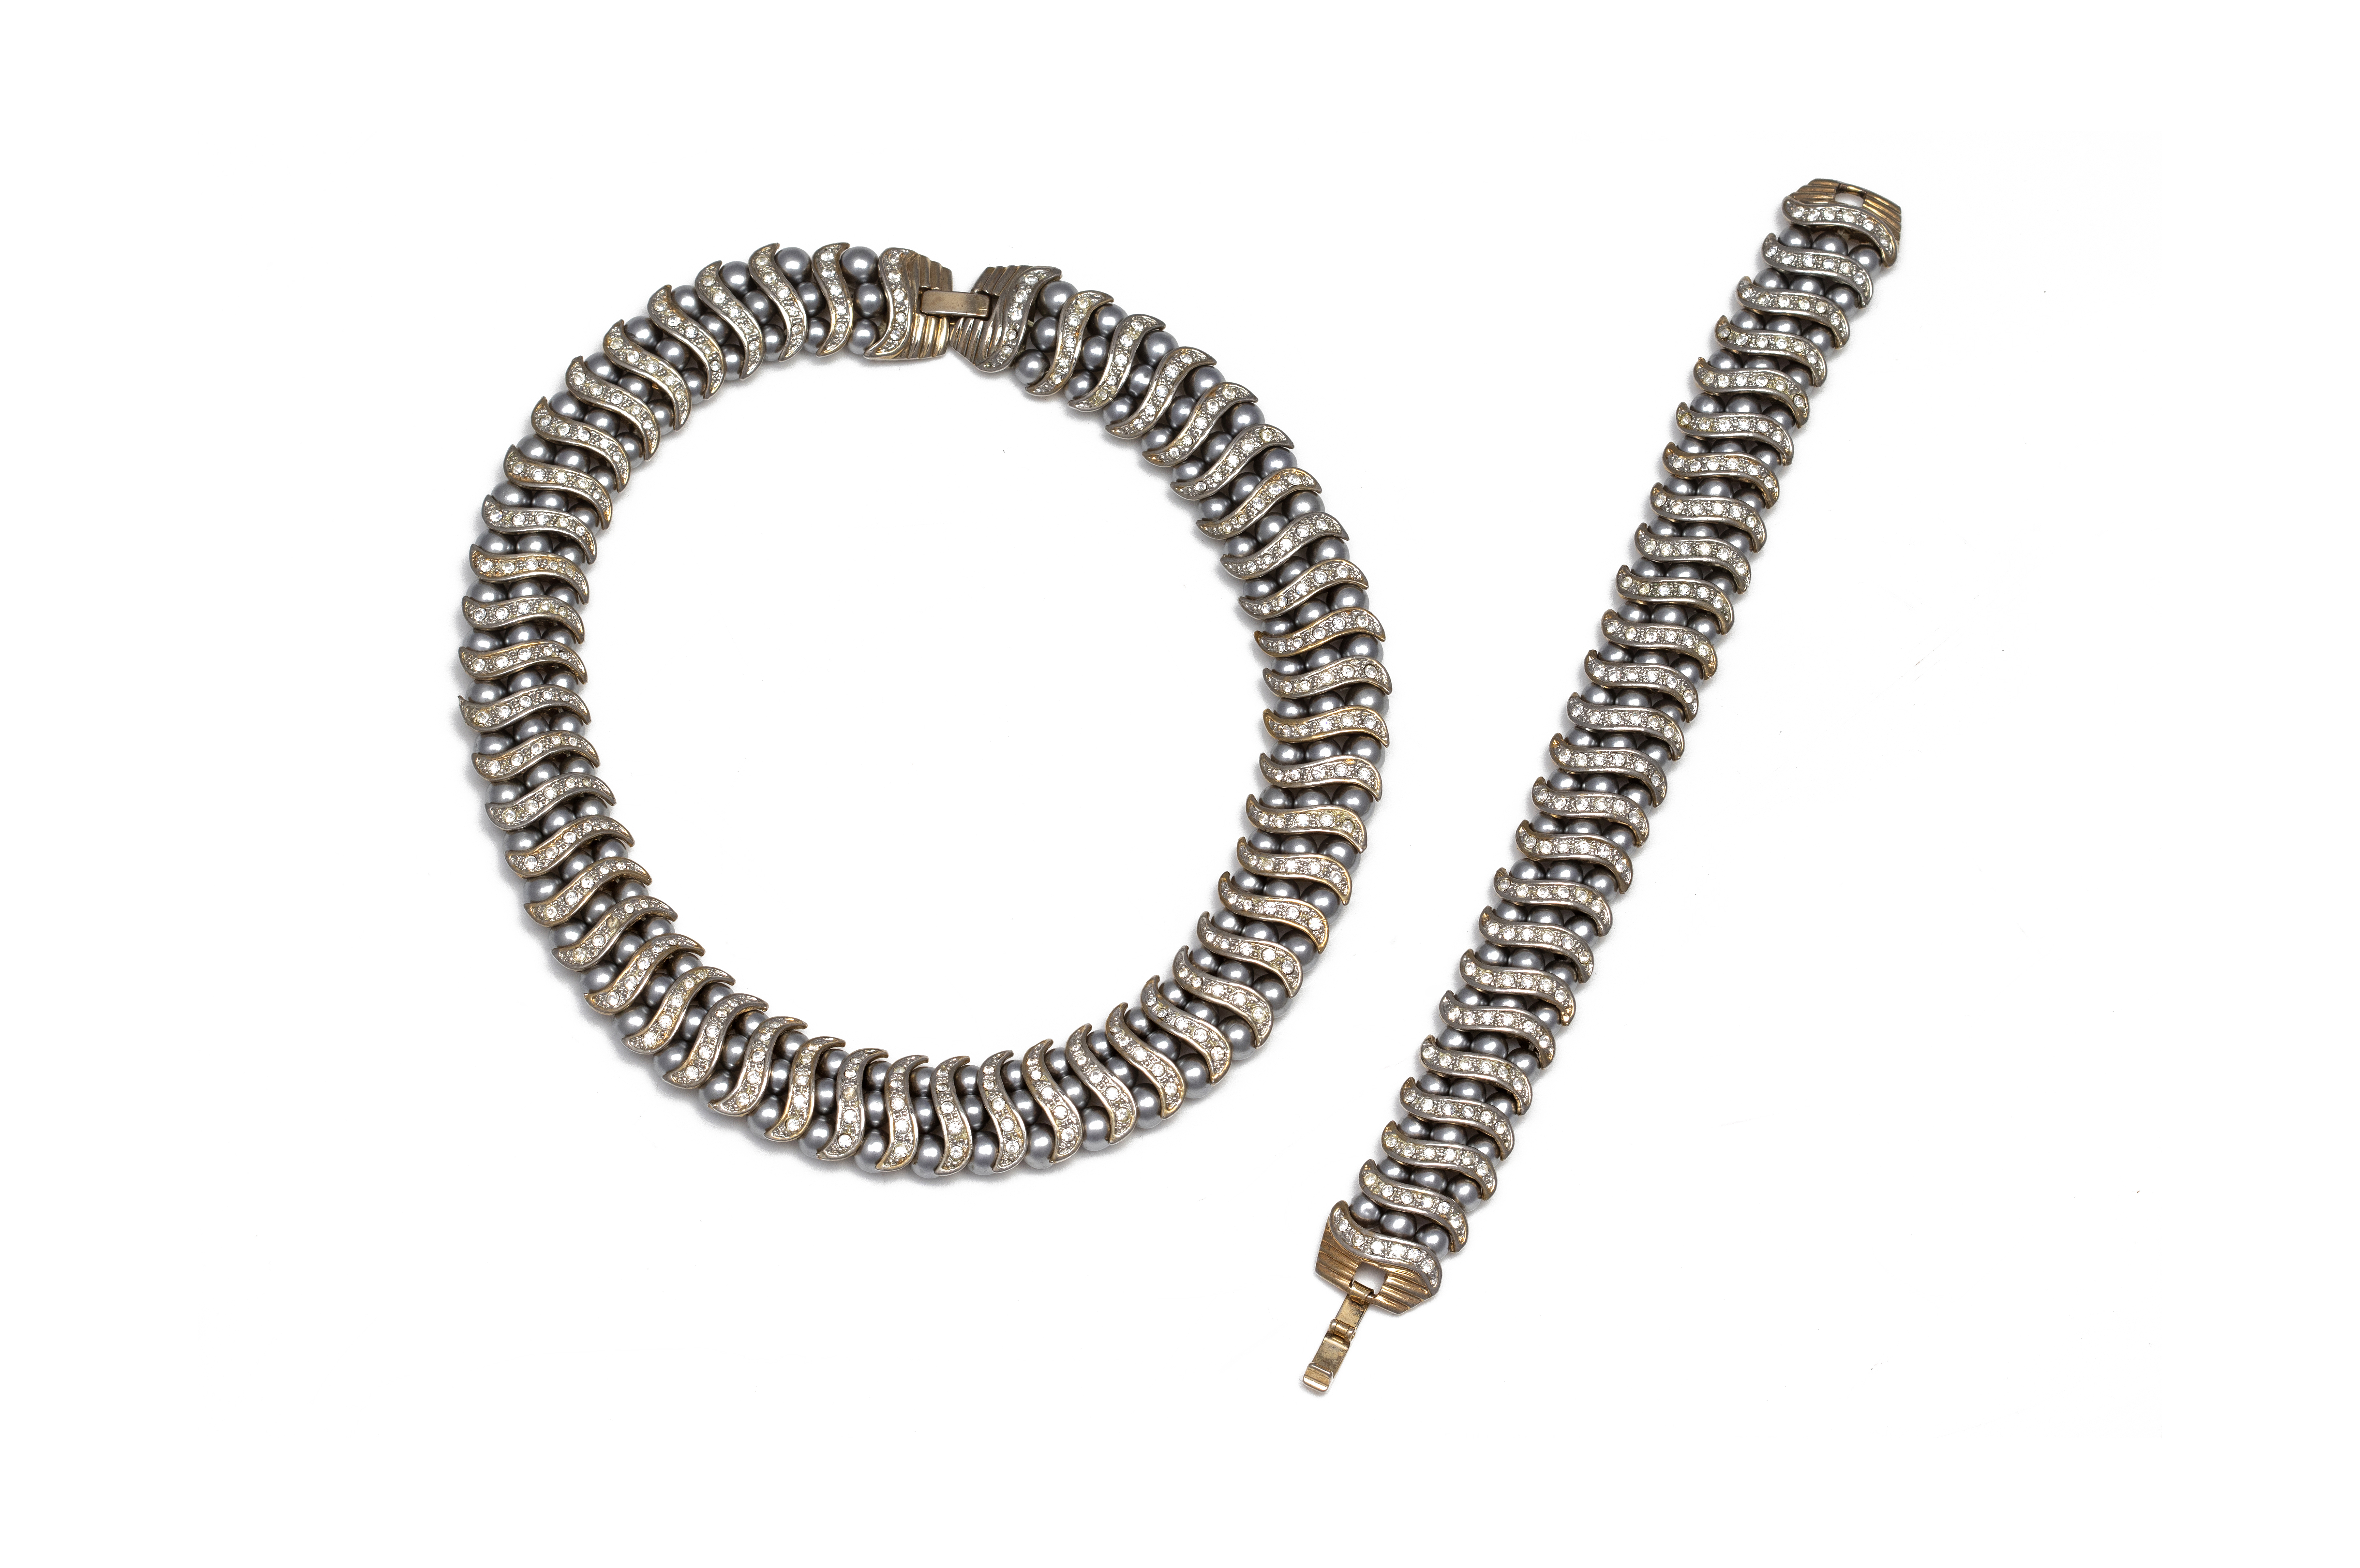 A CULTURED PEARL AND PASTE NECKLACE AND BRACELET SET